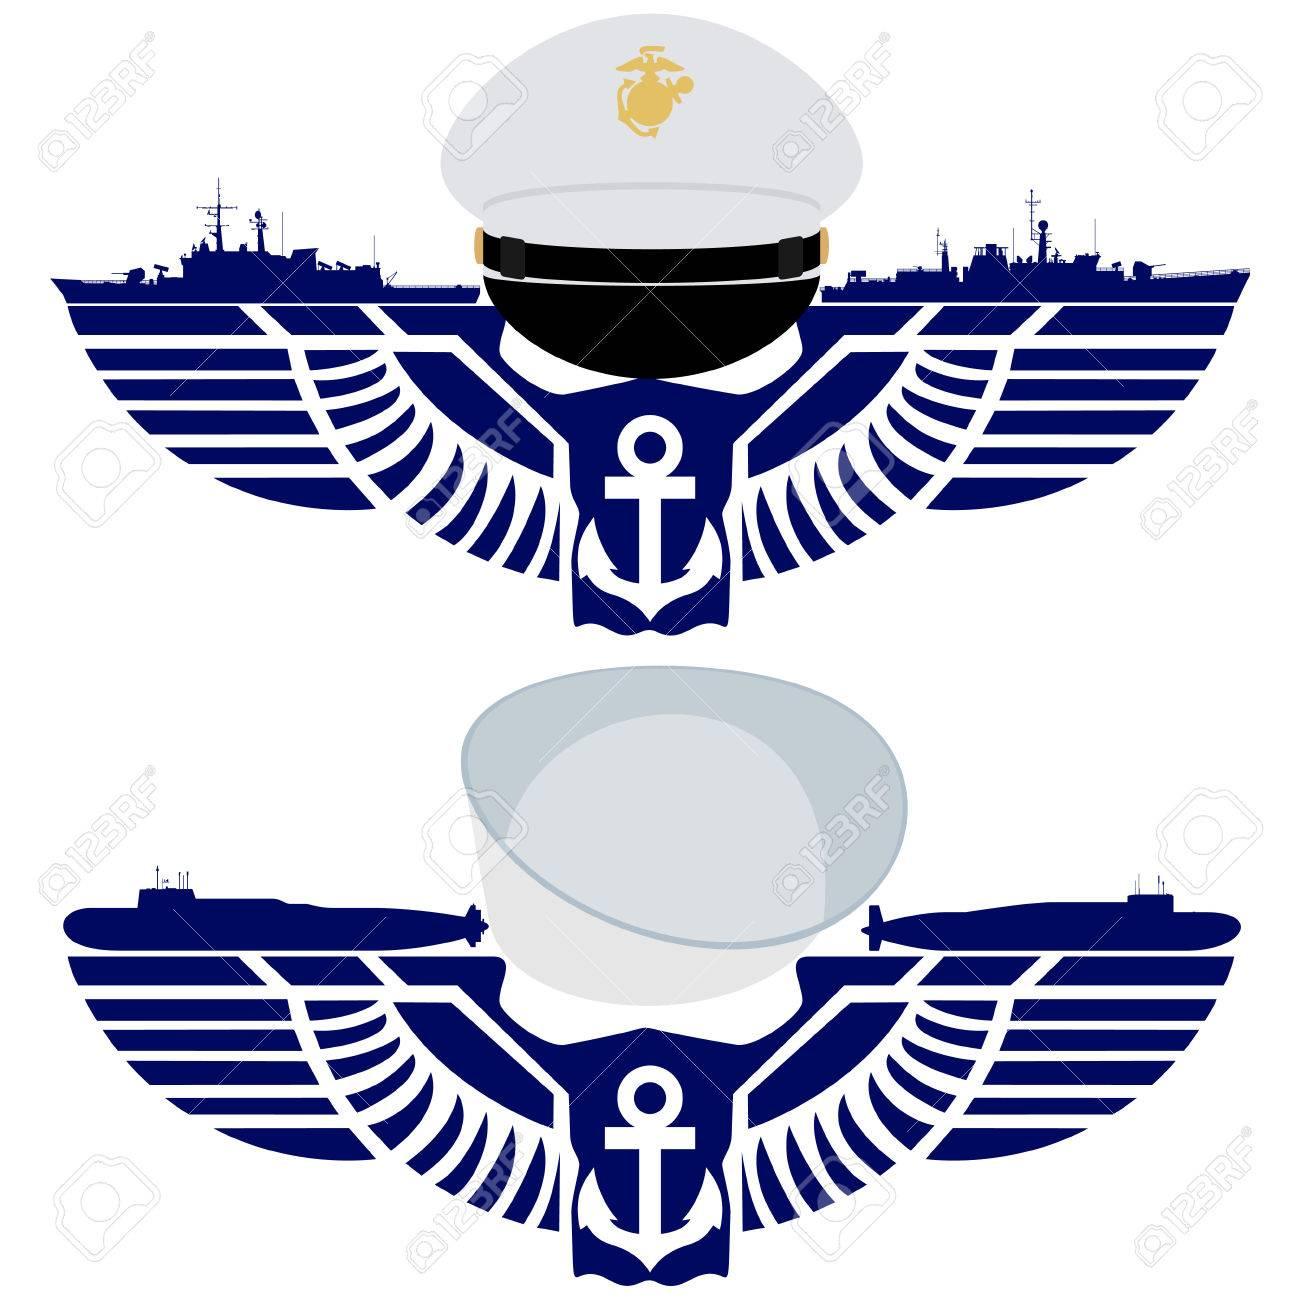 The Icons Of The Navy United States Royalty Free Cliparts Vectors